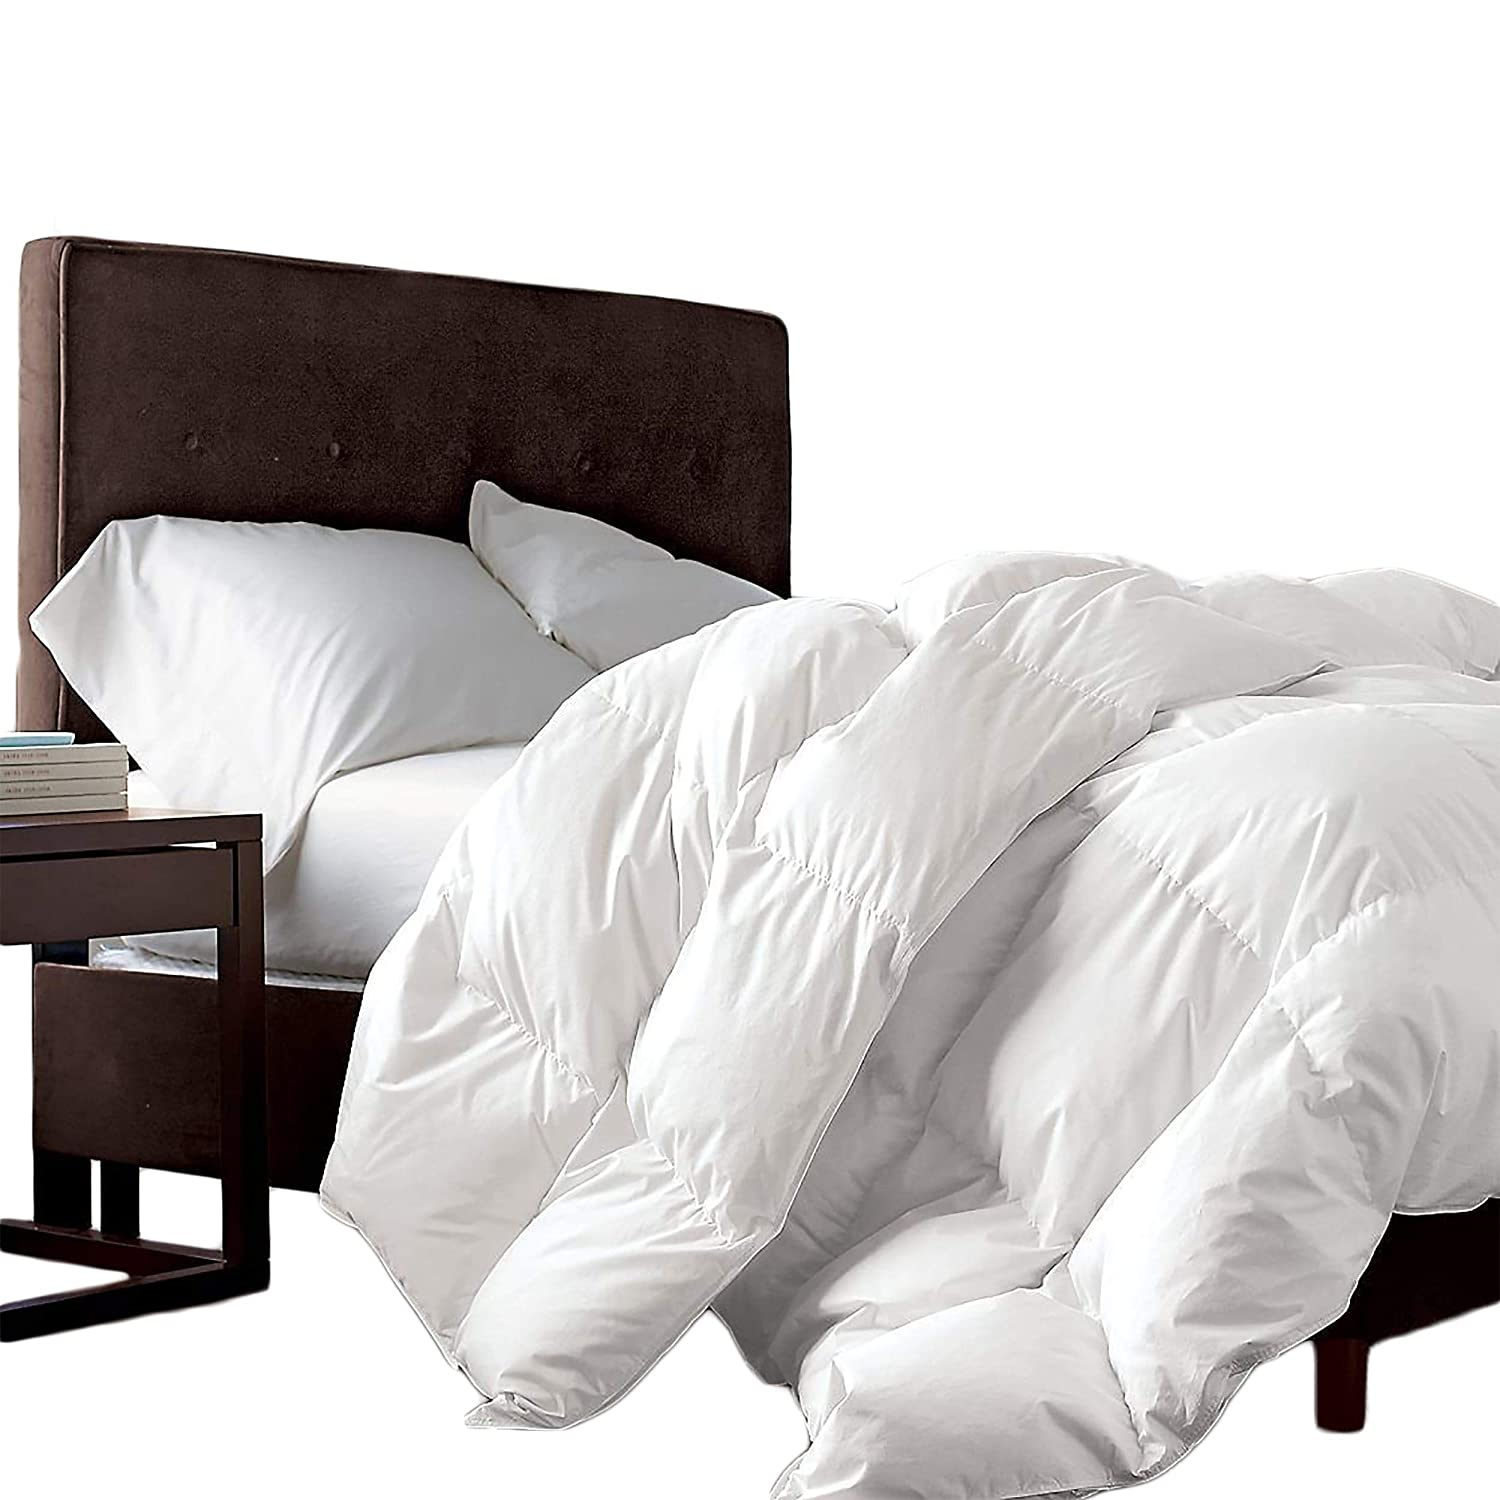 LUXURIOUS FULL / QUEEN Size Siberian GOOSE DOWN Comforter